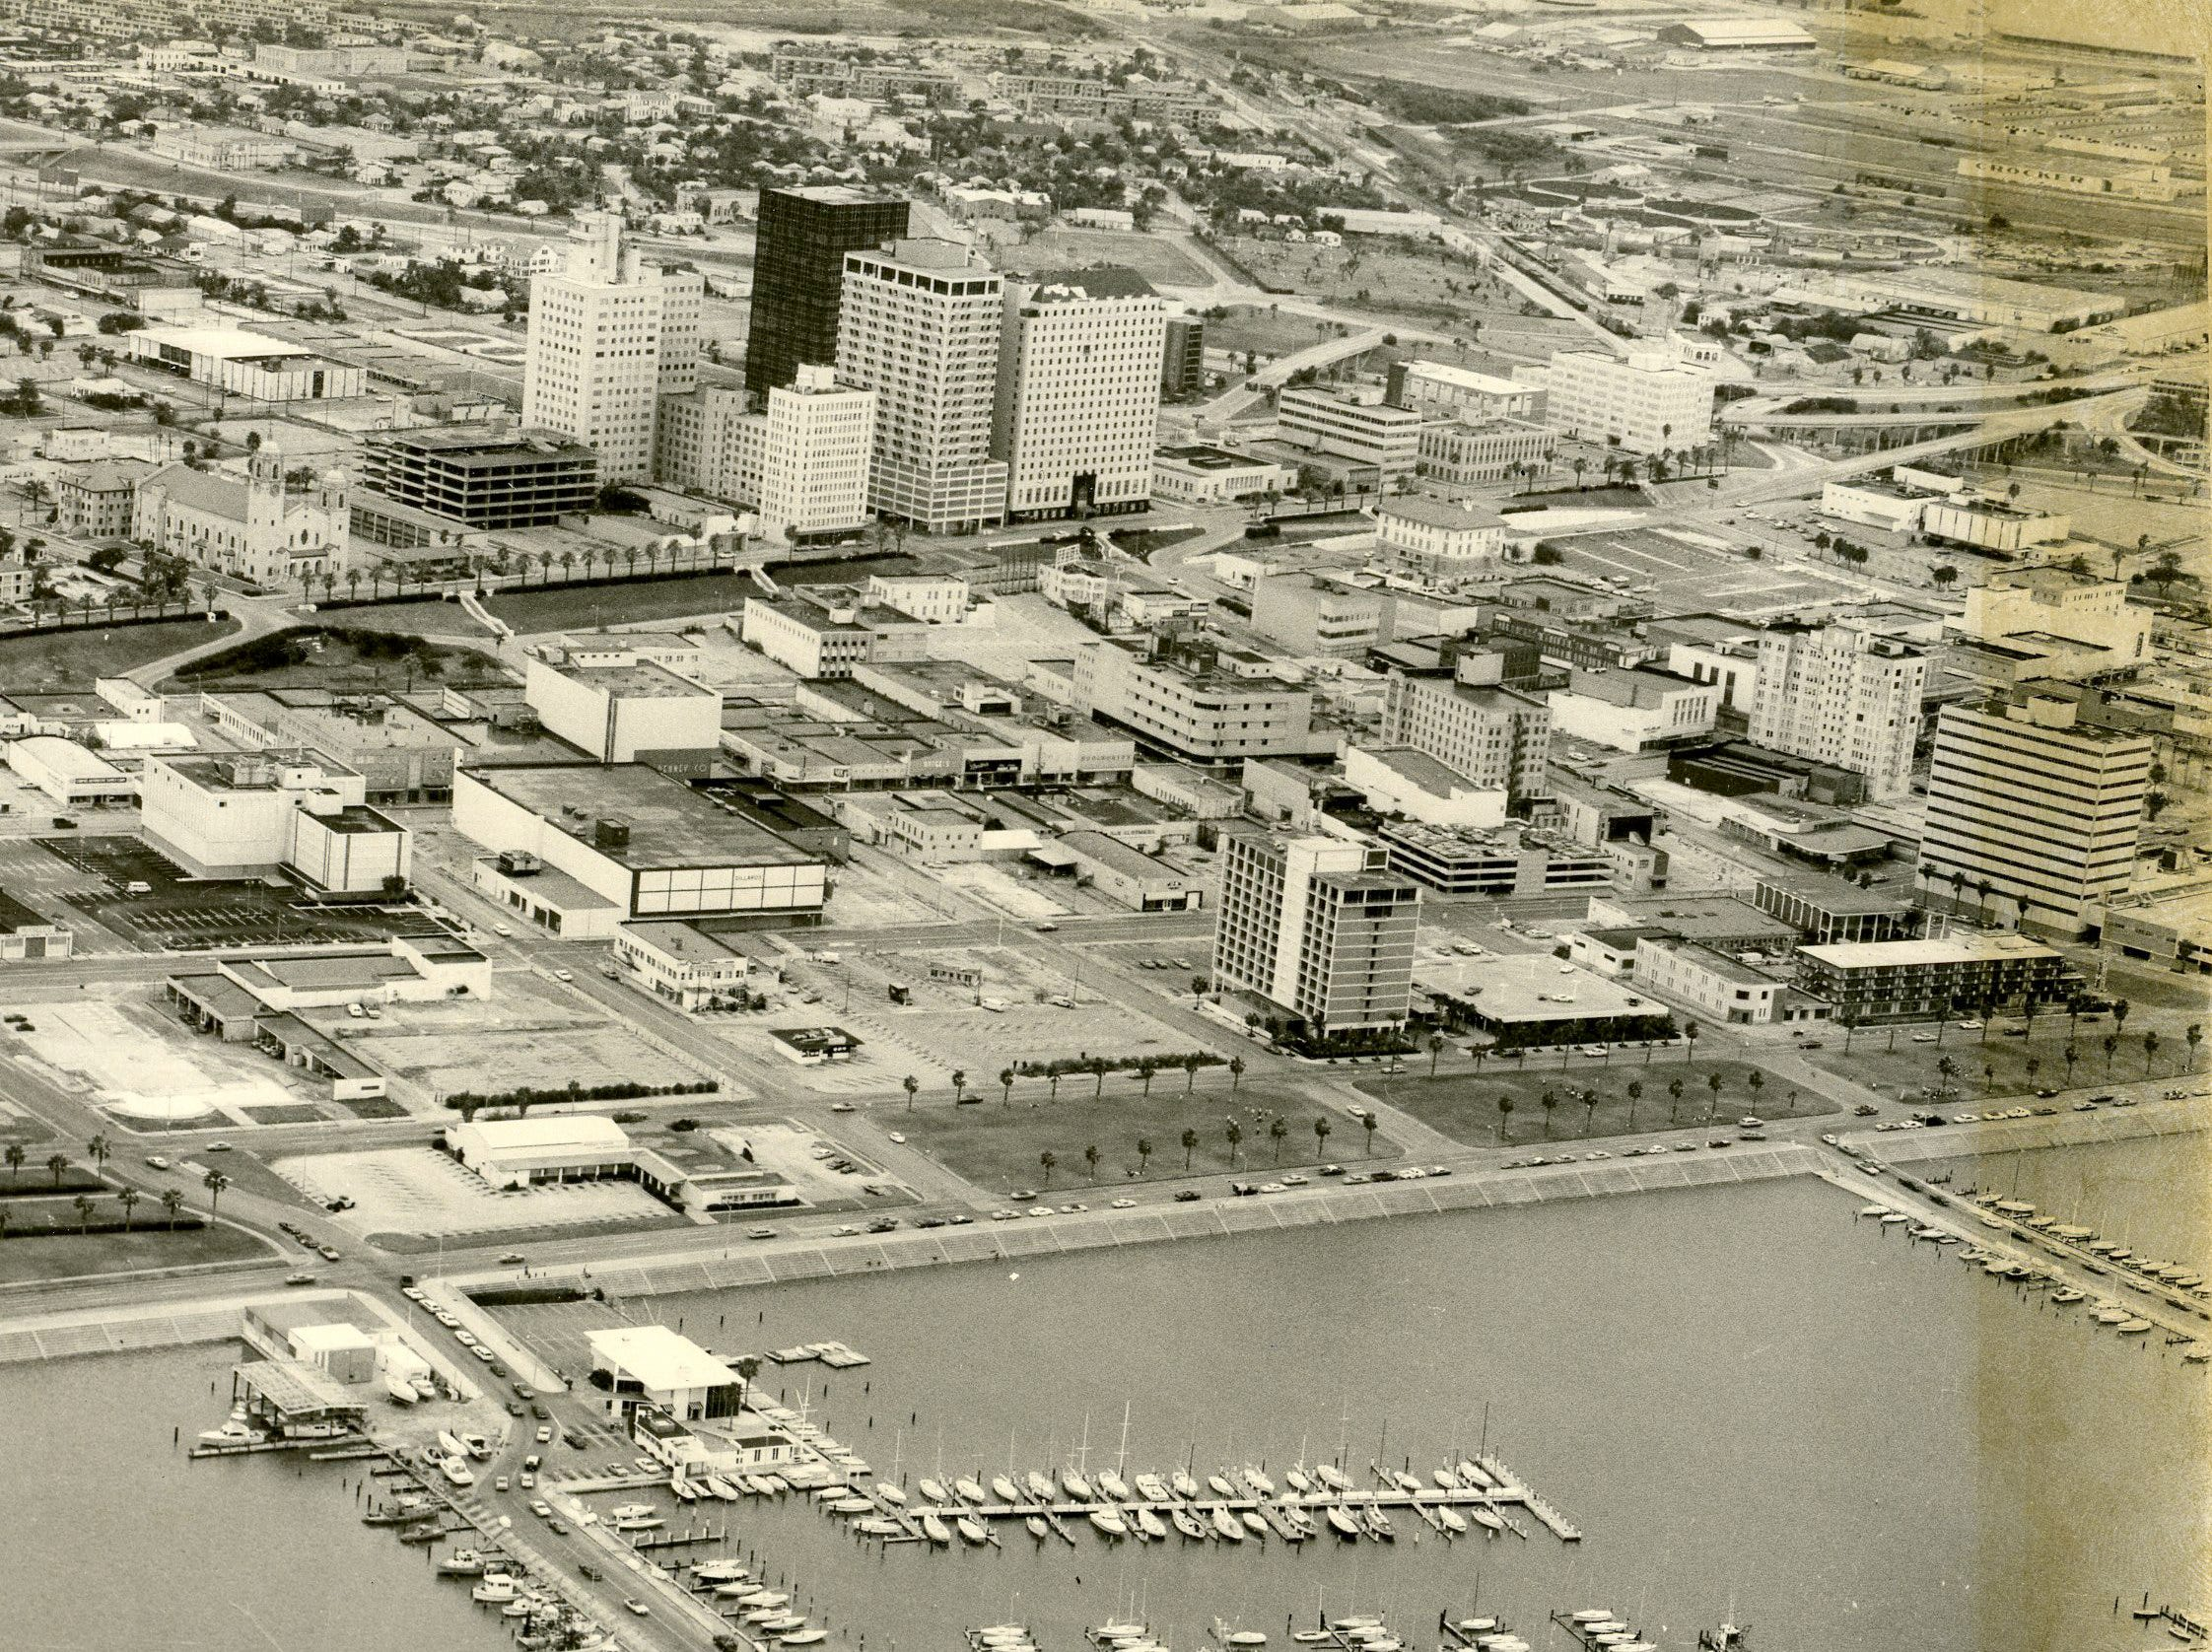 The Coopers Alley L-Head can be seen in this aerial view of downtown and uptown Corpus Christi taken in 1971.